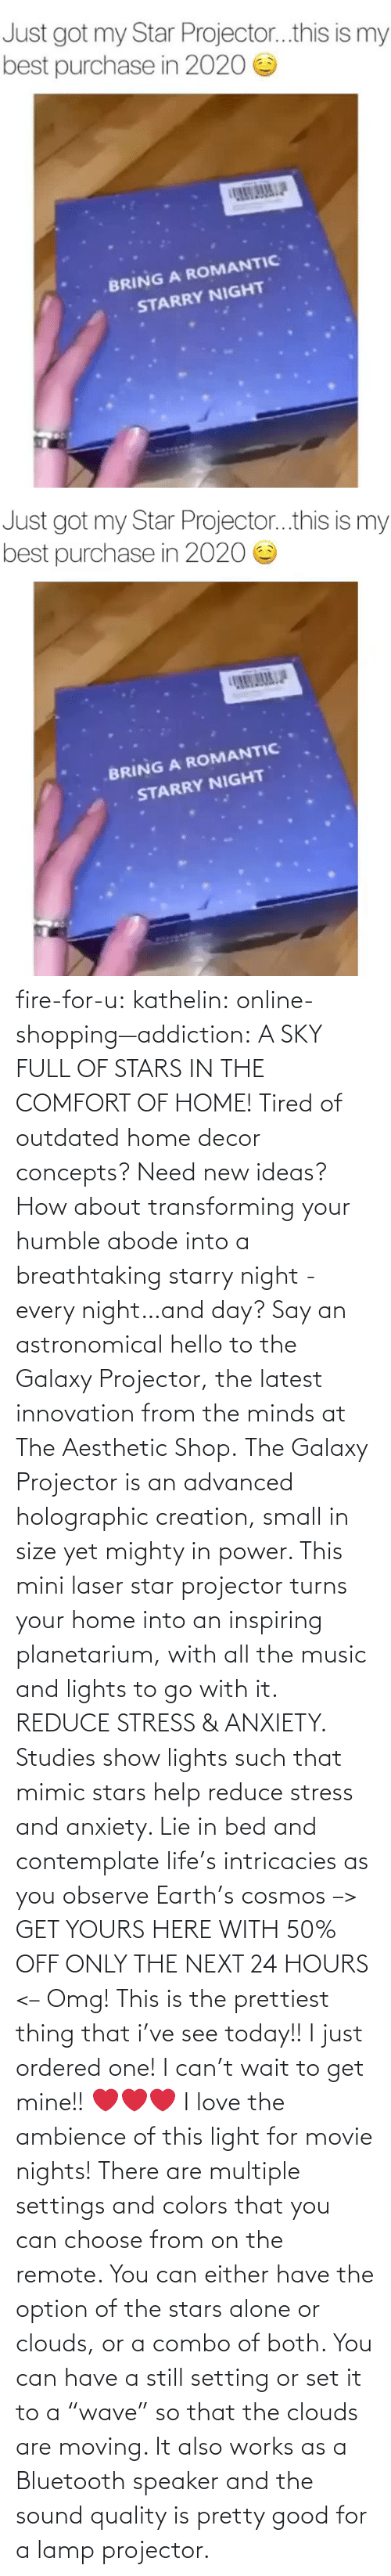 "Into: fire-for-u:  kathelin: online-shopping—addiction:  A SKY FULL OF STARS IN THE COMFORT OF HOME! Tired of outdated home decor concepts? Need new ideas? How about transforming your humble abode into a breathtaking starry night - every night…and day? Say an astronomical hello to the Galaxy Projector, the latest innovation from the minds at The Aesthetic Shop. The Galaxy Projector is an advanced holographic creation, small in size yet mighty in power. This mini laser star projector turns your home into an inspiring planetarium, with all the music and lights to go with it. REDUCE STRESS & ANXIETY. Studies show lights such that mimic stars help reduce stress and anxiety. Lie in bed and contemplate life's intricacies as you observe Earth's cosmos  –> GET YOURS HERE WITH 50% OFF ONLY THE NEXT 24 HOURS <–   Omg! This is the prettiest thing that i've see today!! I just ordered one! I can't wait to get mine!! ❤️️❤️️❤️️  I love the ambience of this light for movie nights! There are multiple settings and colors that you can choose from on the remote. You can either have the option of the stars alone or clouds, or a combo of both. You can have a still setting or set it to a ""wave"" so that the clouds are moving. It also works as a Bluetooth speaker and the sound quality is pretty good for a lamp projector."